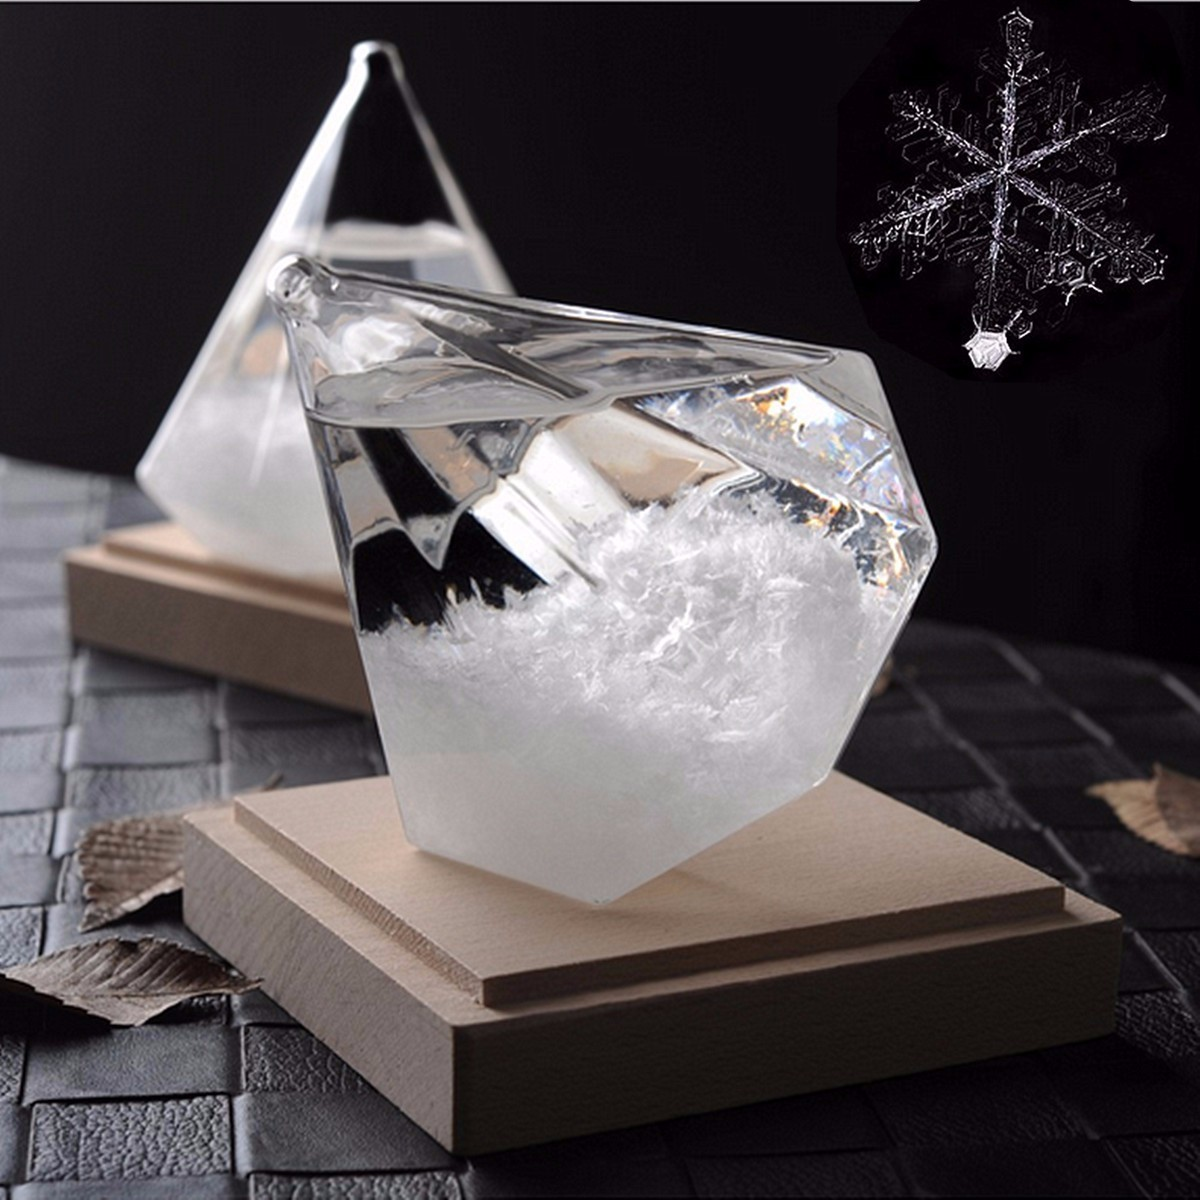 Transparent Ice Diamond Storms Glass Snowflake Weather Storms Forecast Predictor Monitor Bottle Barometer Home Decor Figurines